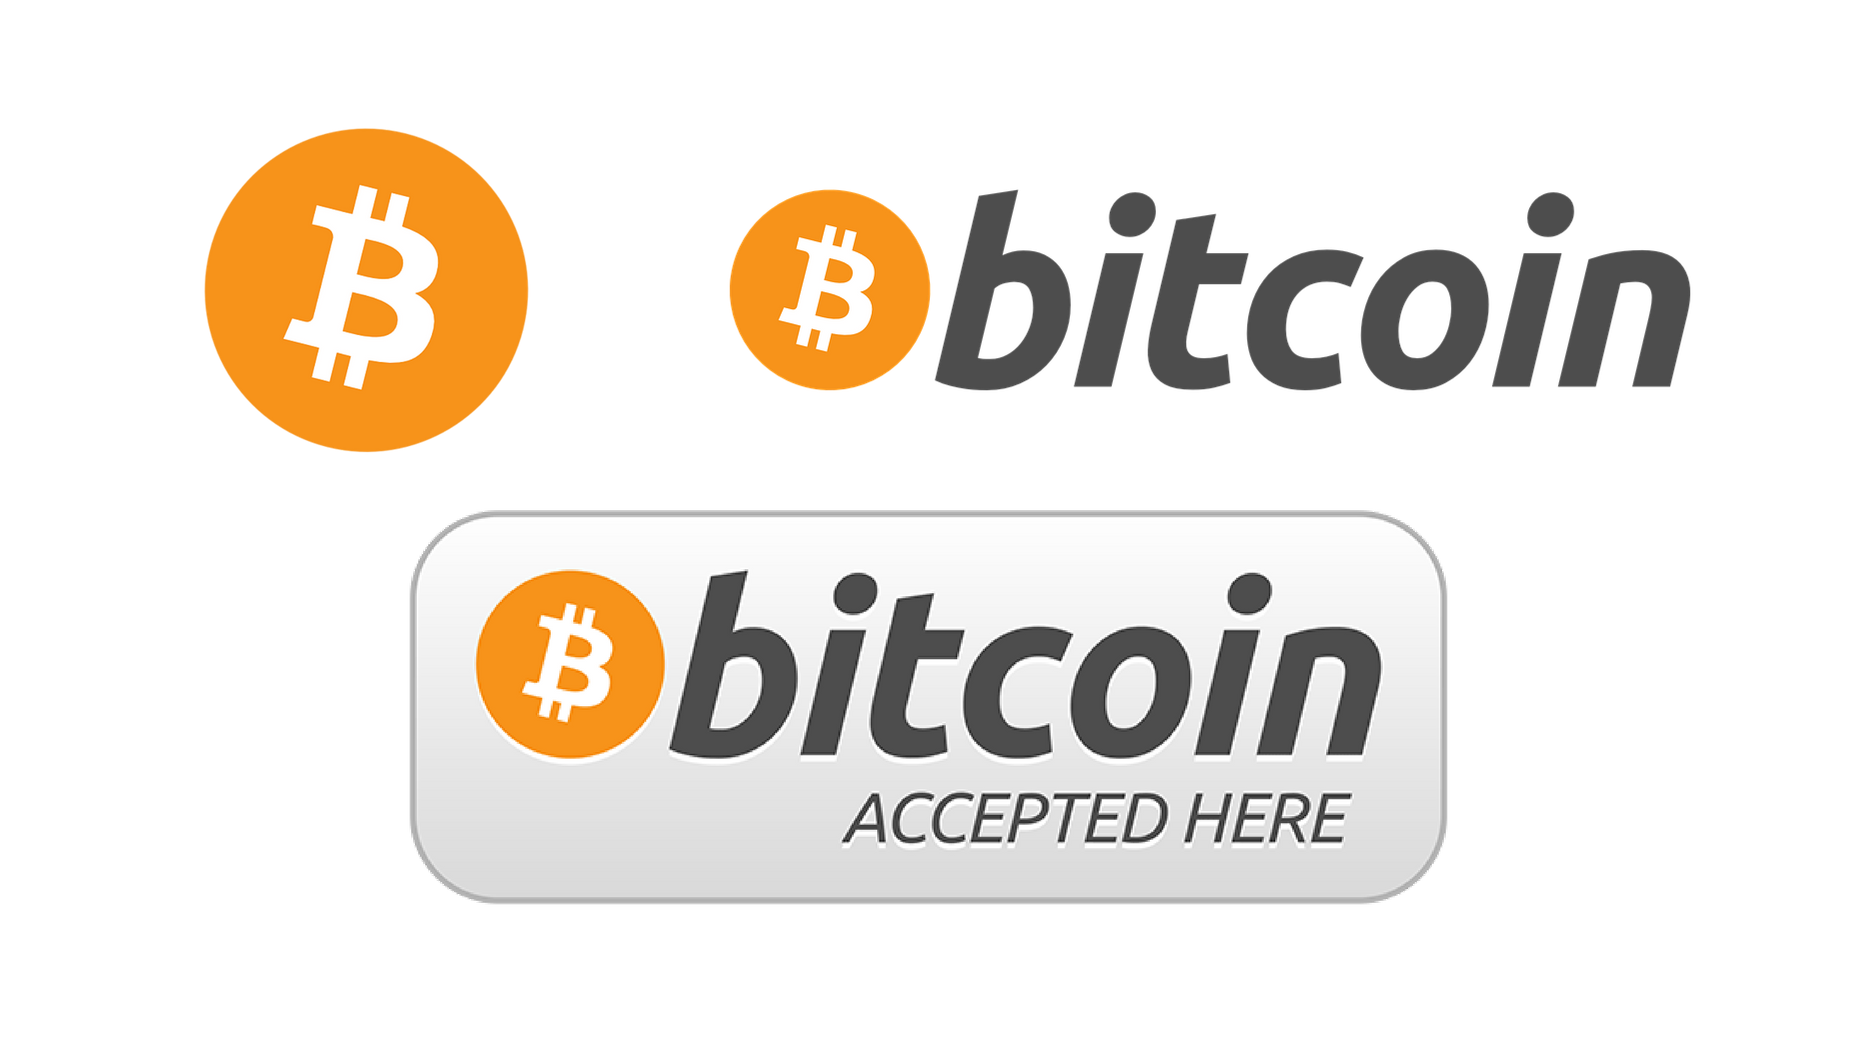 Ultimate bitcoin blueprint ultimate bitcoin blueprint is an online mastercourse that teaches everything you need to know to make your first bitcoin purchase and to start building malvernweather Images